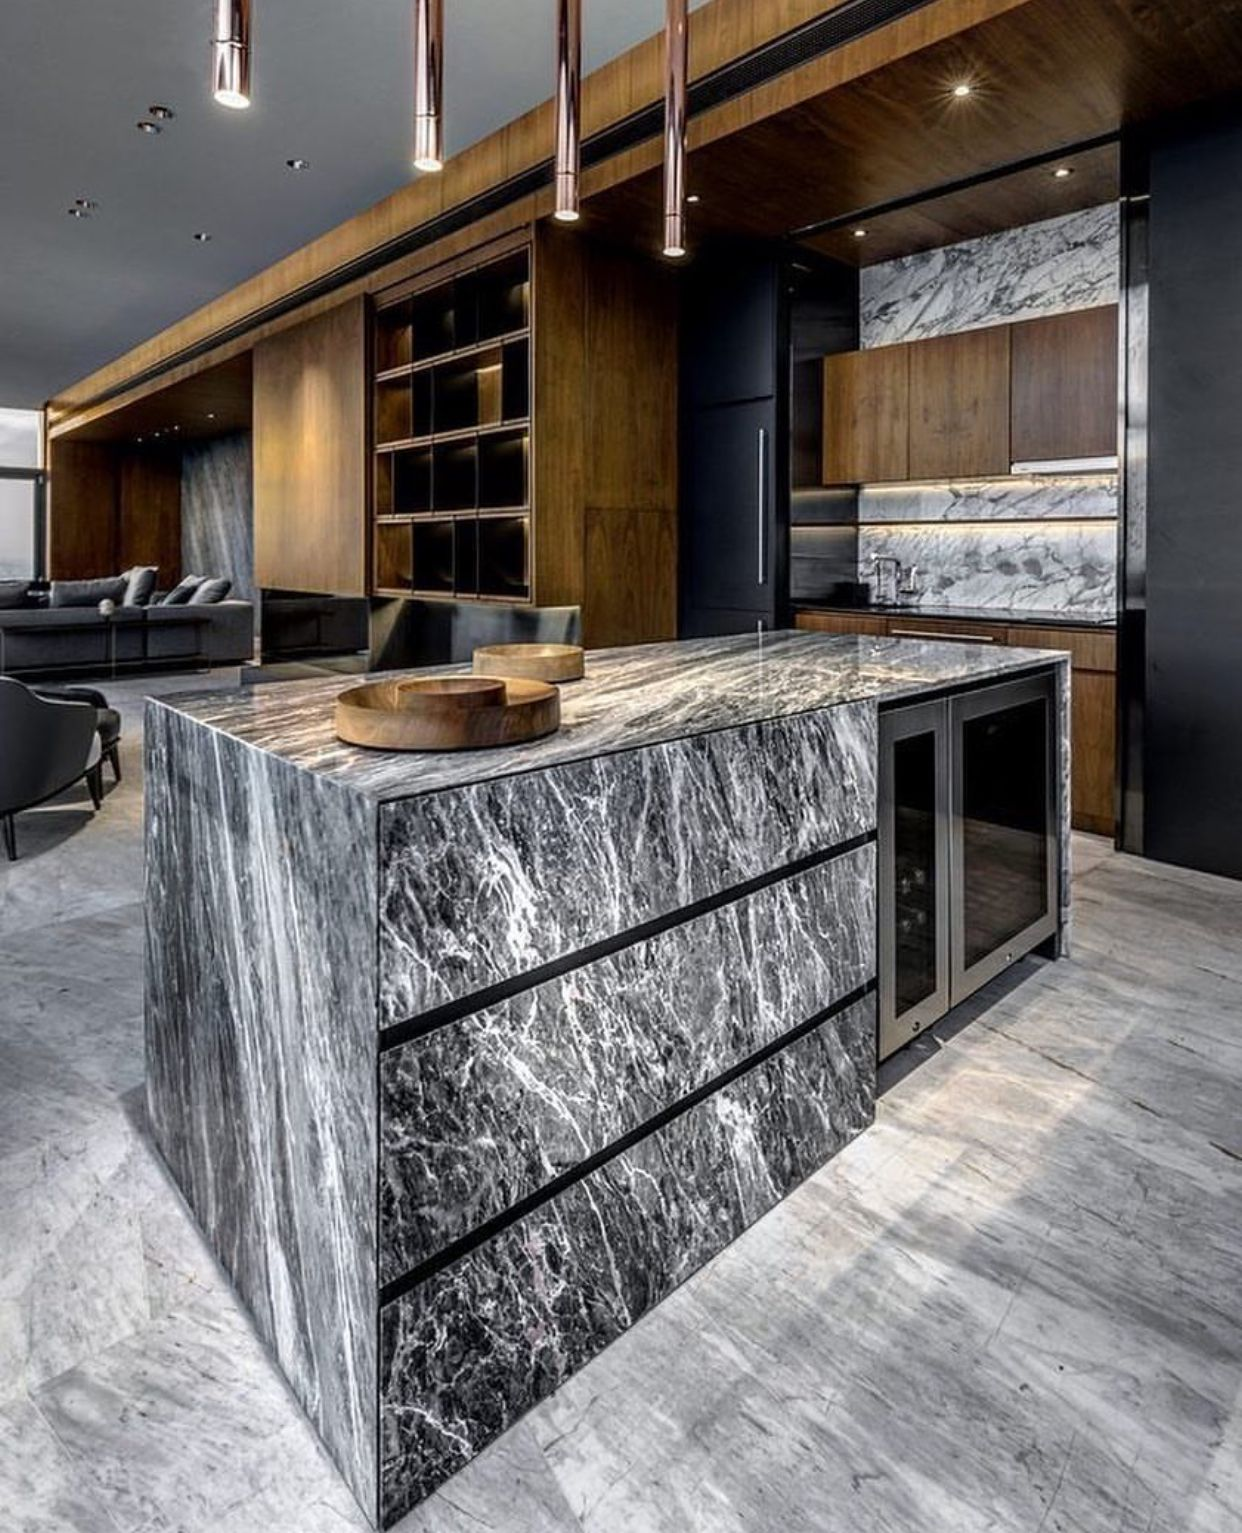 Bachelor Apartment Kitchen Design: Pin By Nusa Home On Kitchen In 2019